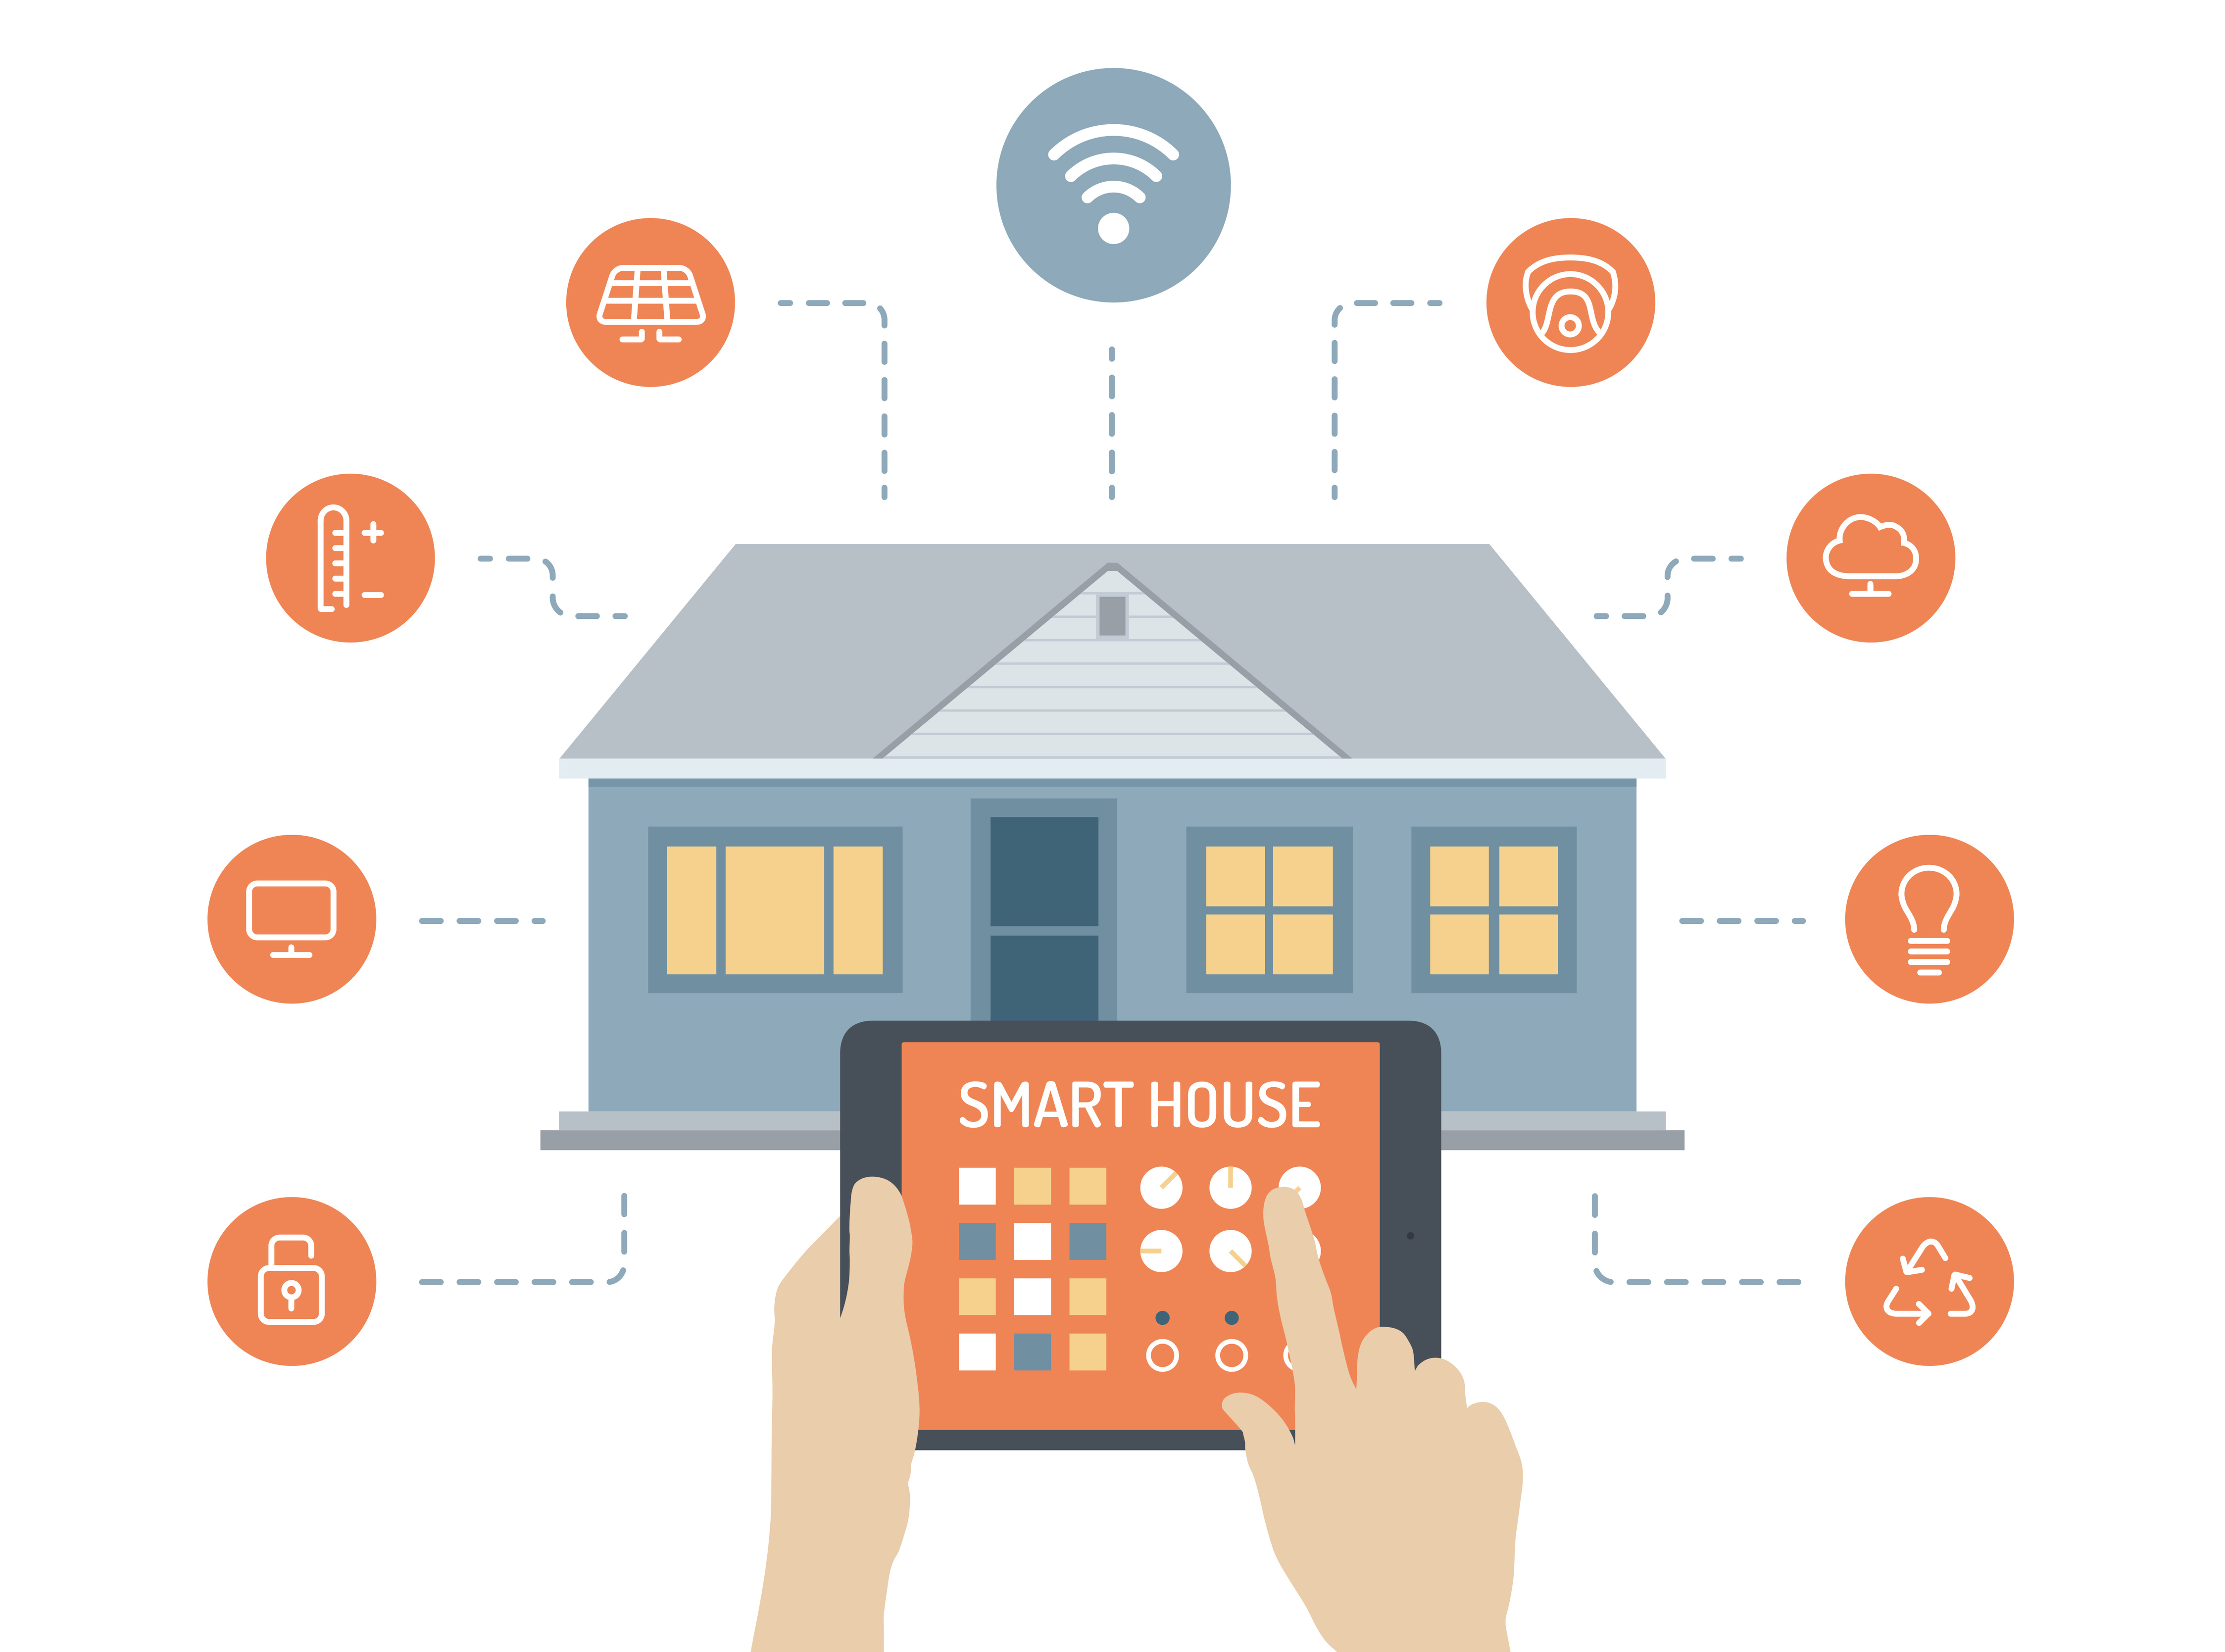 Source: http://gstylemag.com/wp-content/uploads/2015/01/SmartHome.jpg